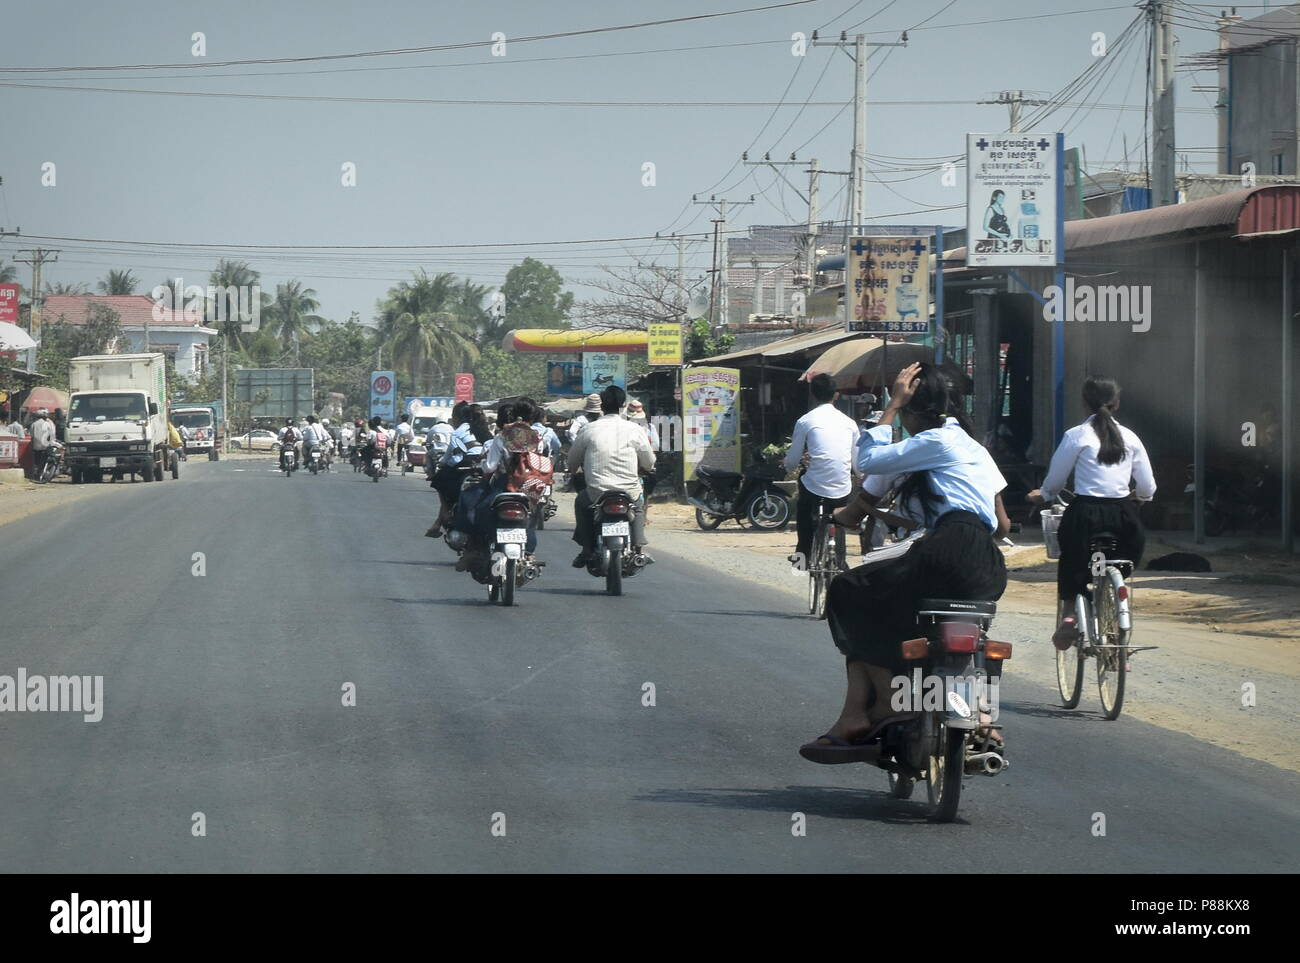 Rural Cambodia school students commute back home using bicycles and motorcycles on a public road - Stock Image